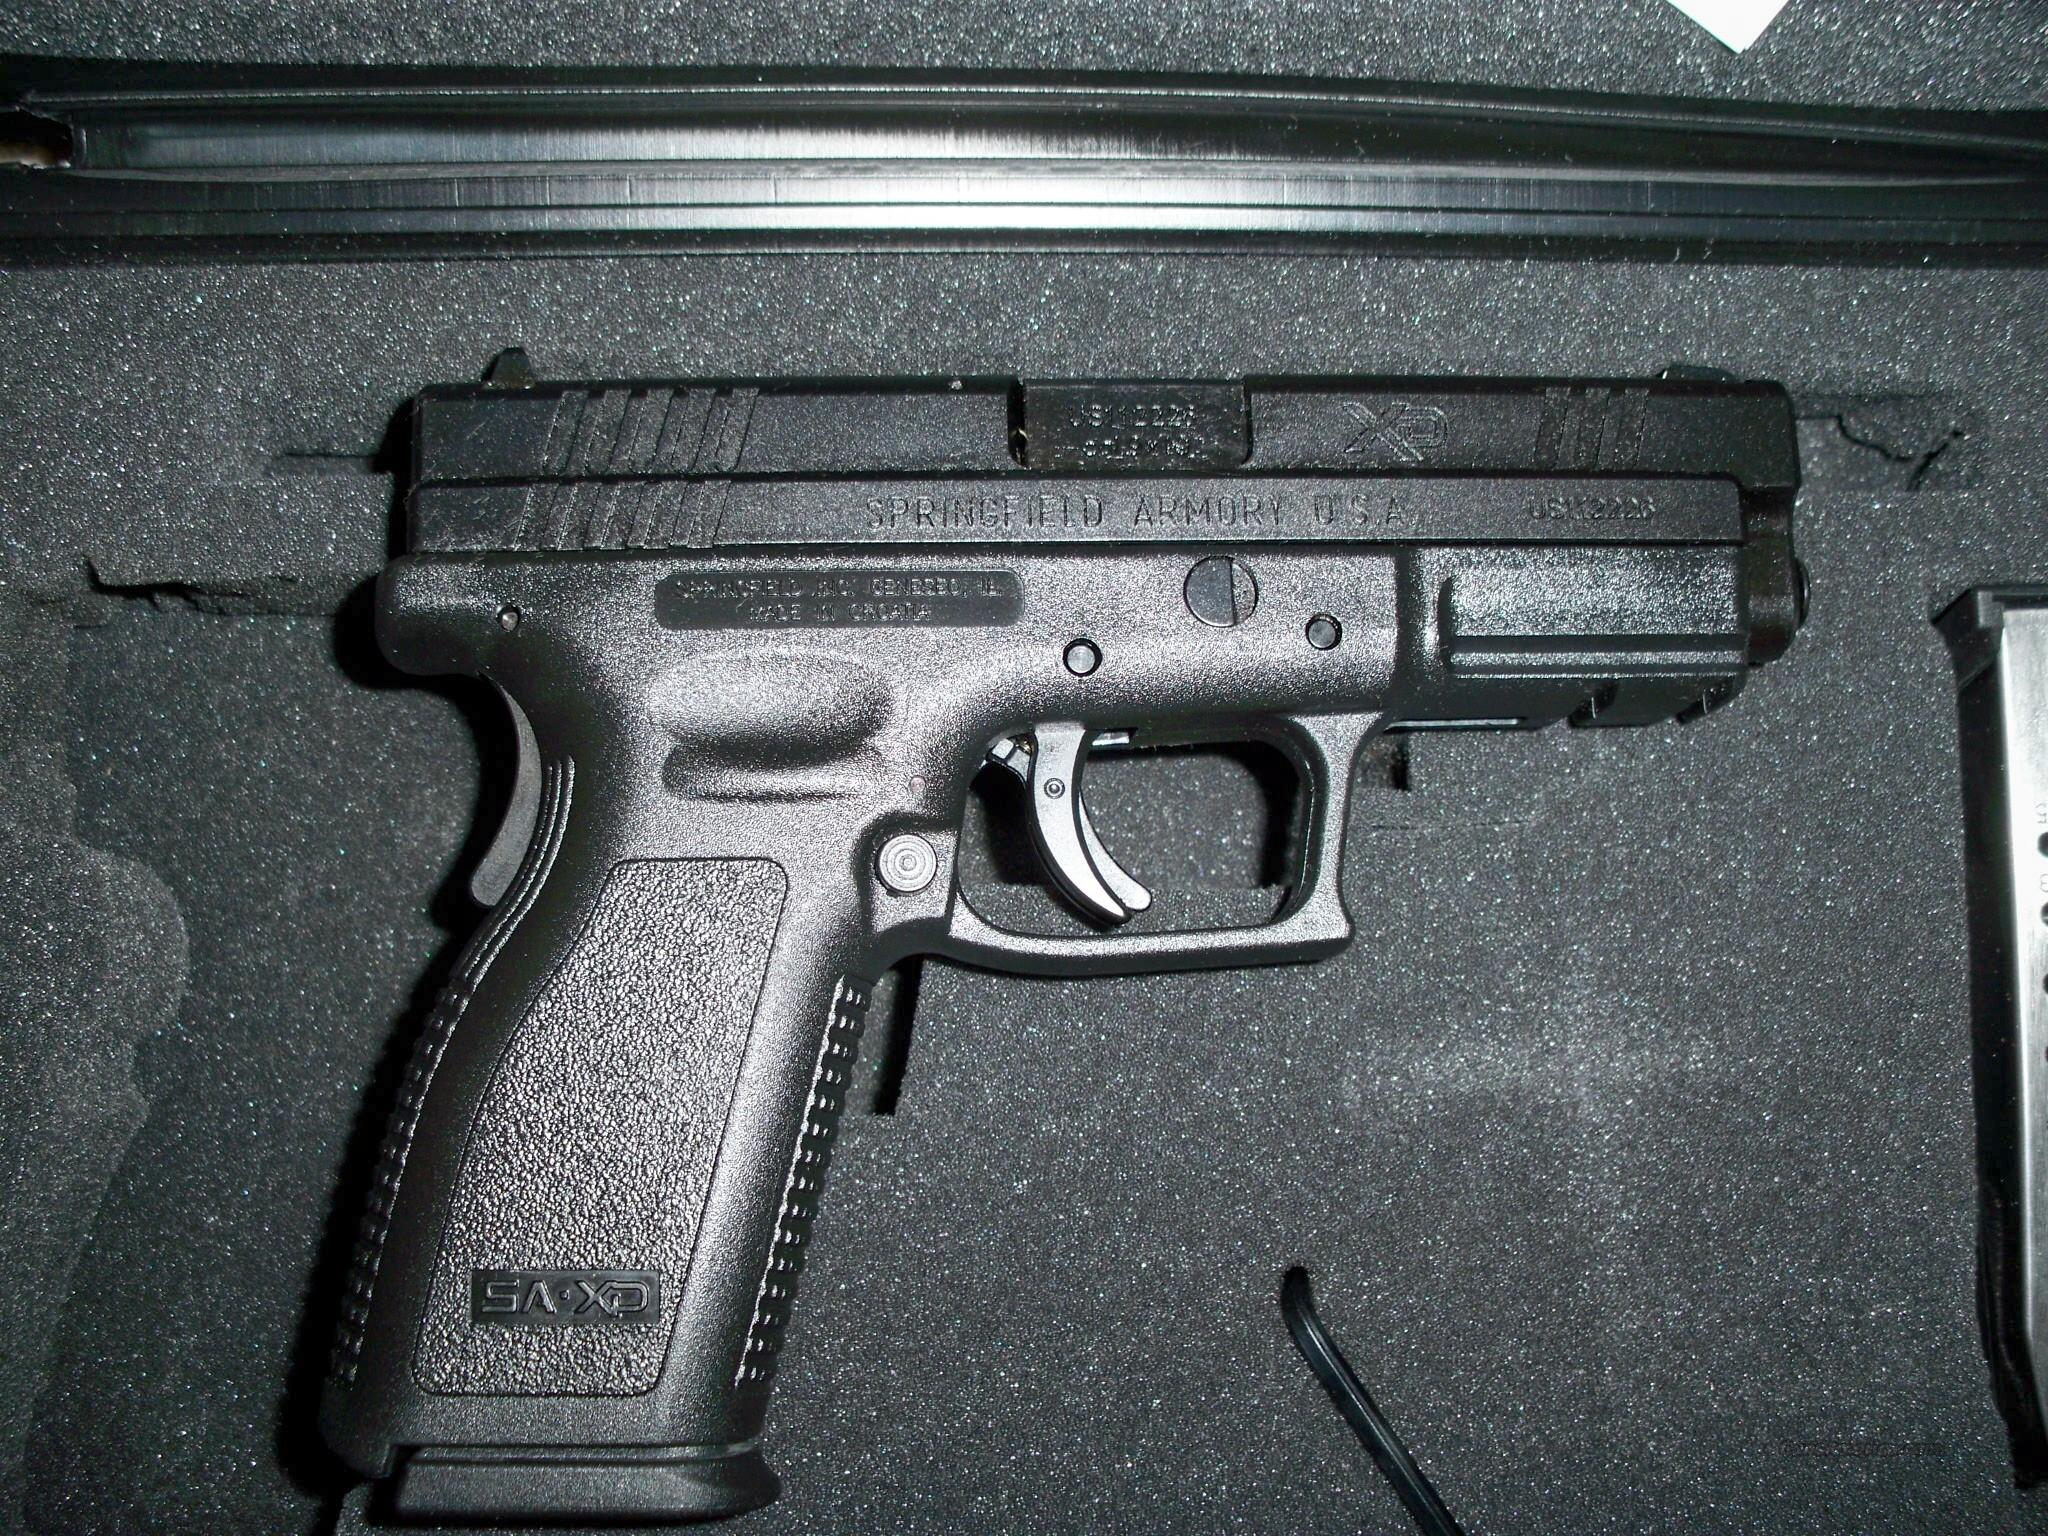 Springfield XD9 9mm 16rd 2 Mags and Accessories   Guns > Pistols > Springfield Armory Pistols > XD (eXtreme Duty)